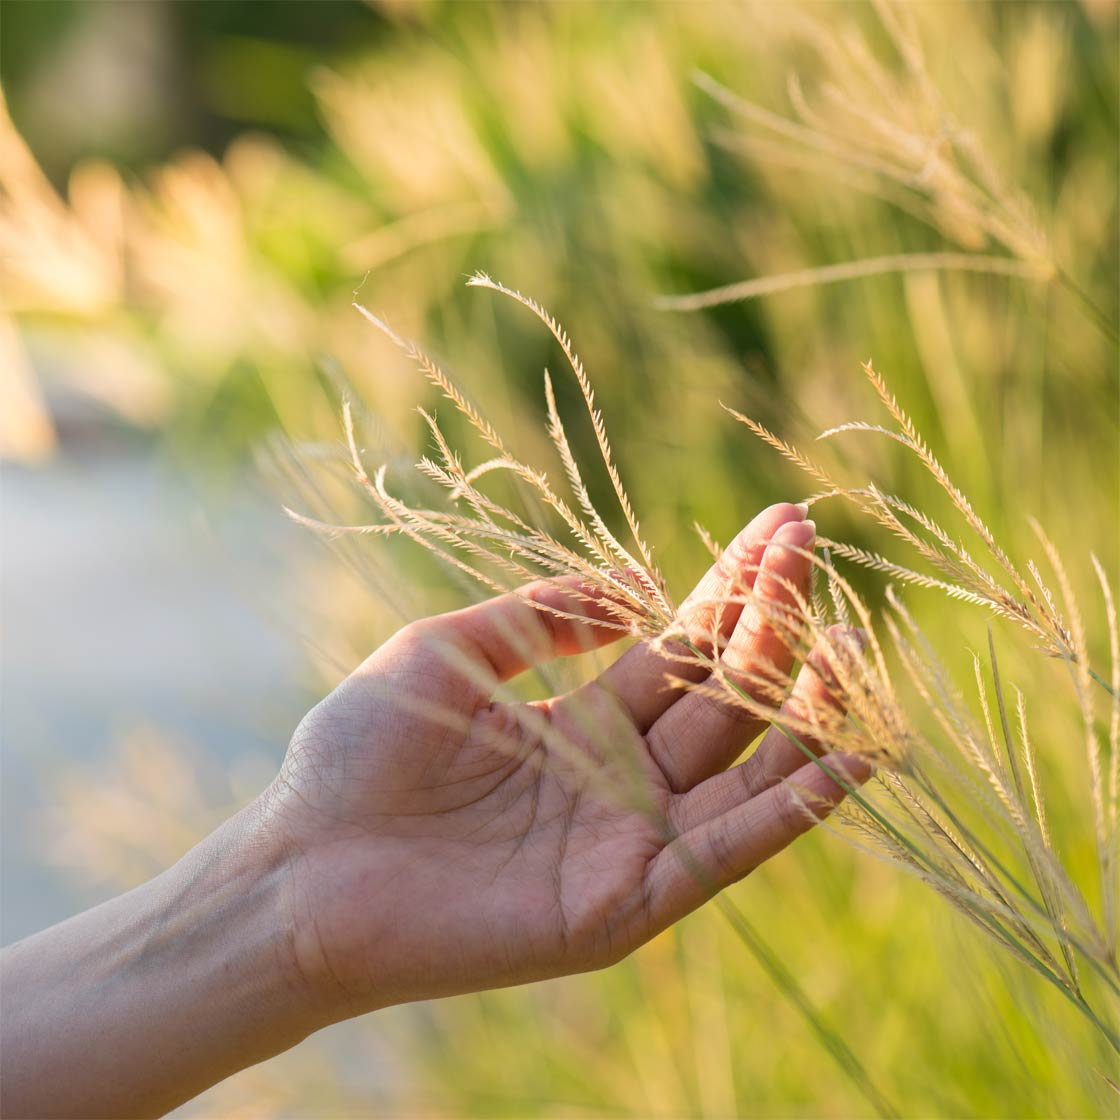 Healing hands touching long grasses in nature